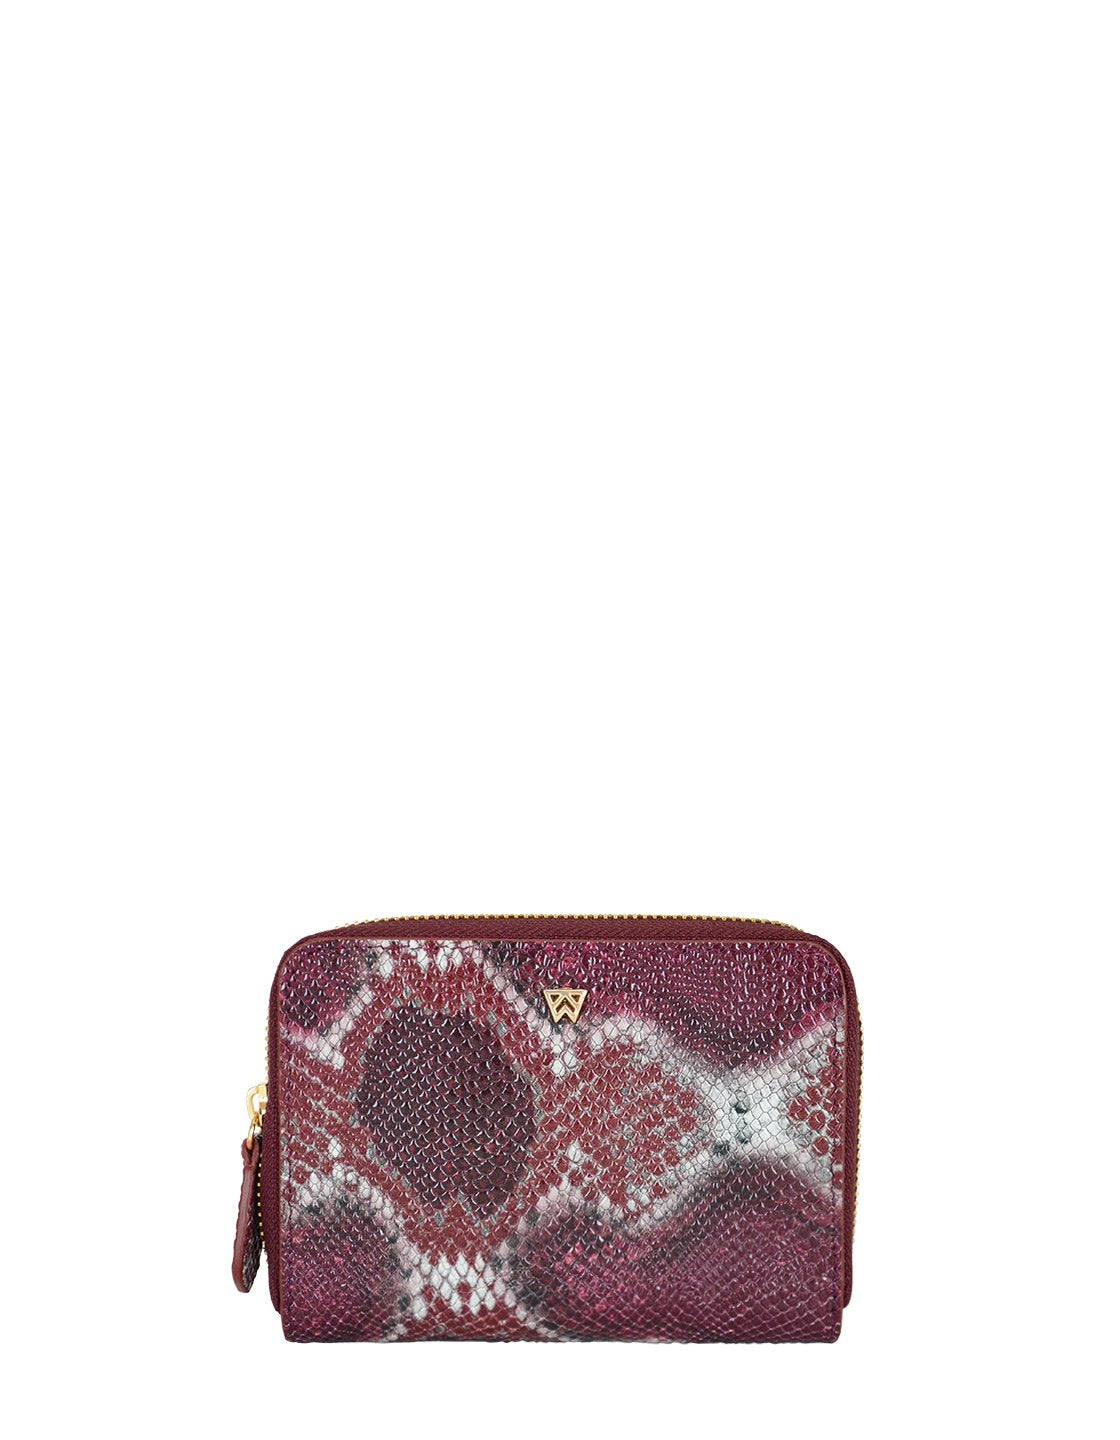 Money Maker Mini Wallet in Crimson/Maroon Multi Python